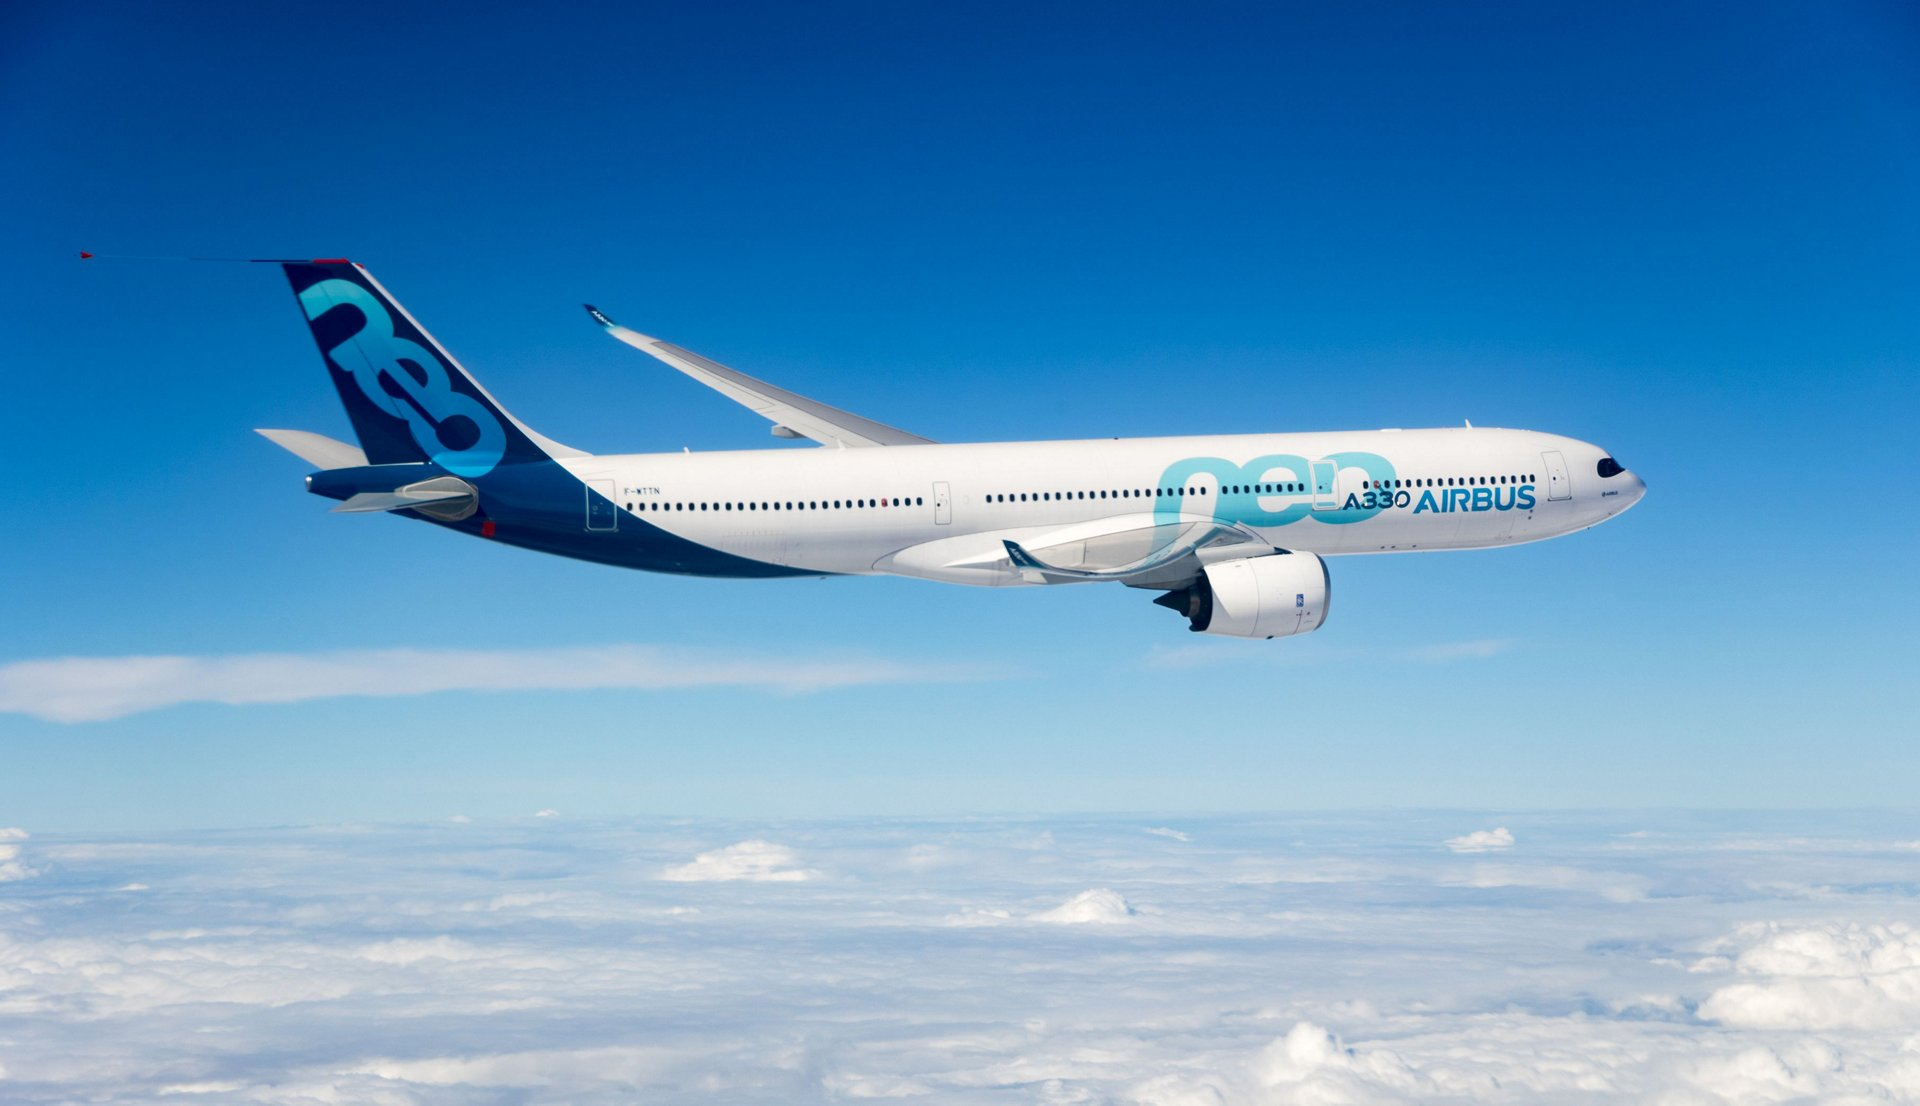 A330neo Credits: Airbus